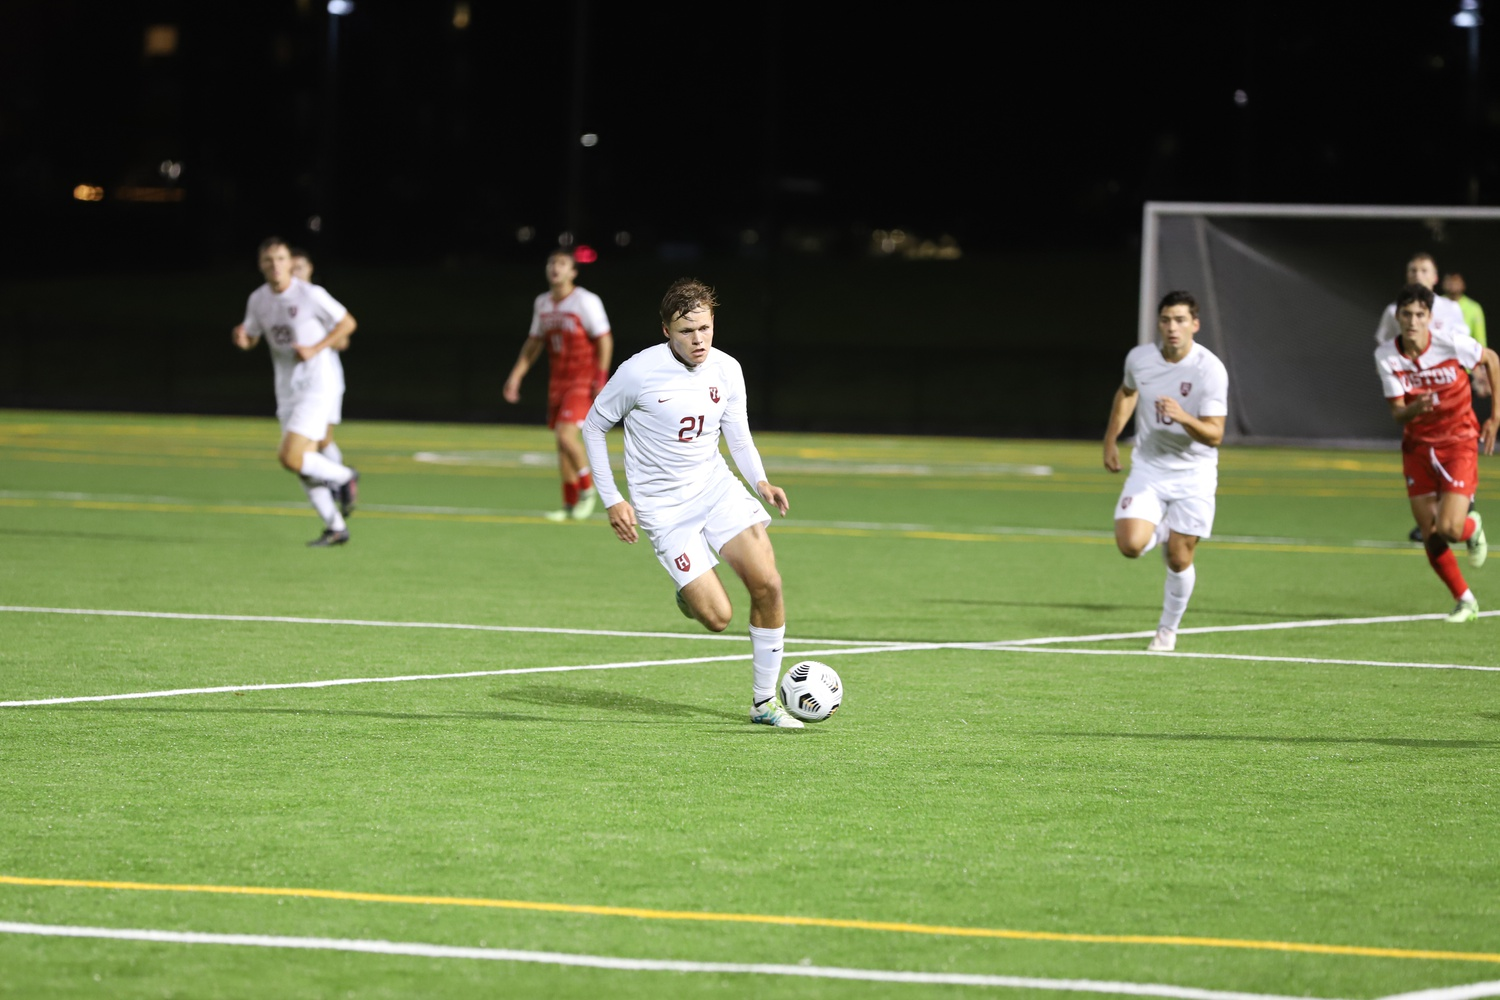 Sophomore midfielder Willem Ebbinge leads the attack, netting his third assist of the season on the way to a 2-1 victory for Harvard.